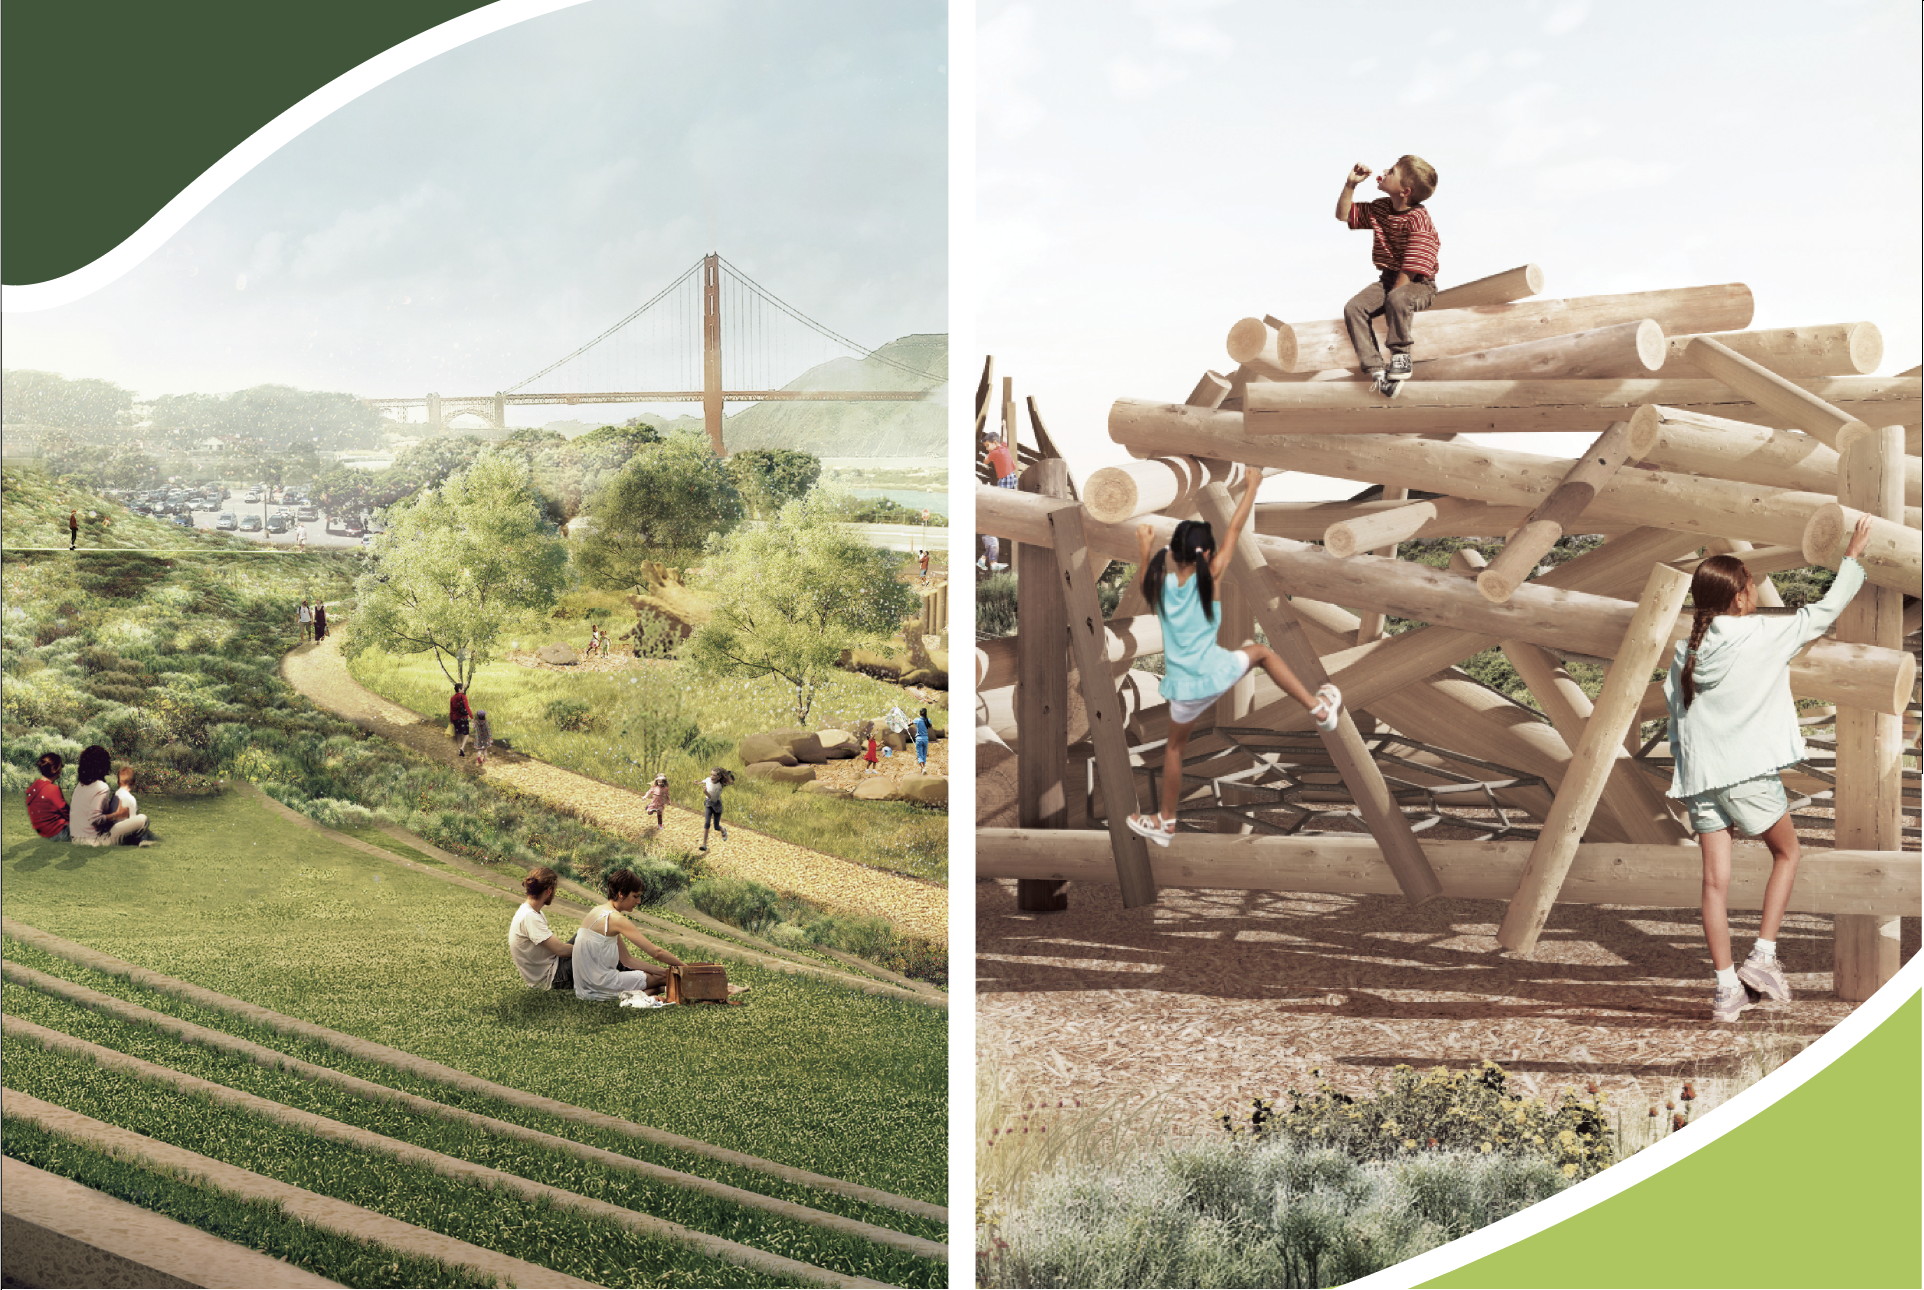 A graphic of a green space and children playing throughout it. The Golden Gate Bridge is visible in the background.